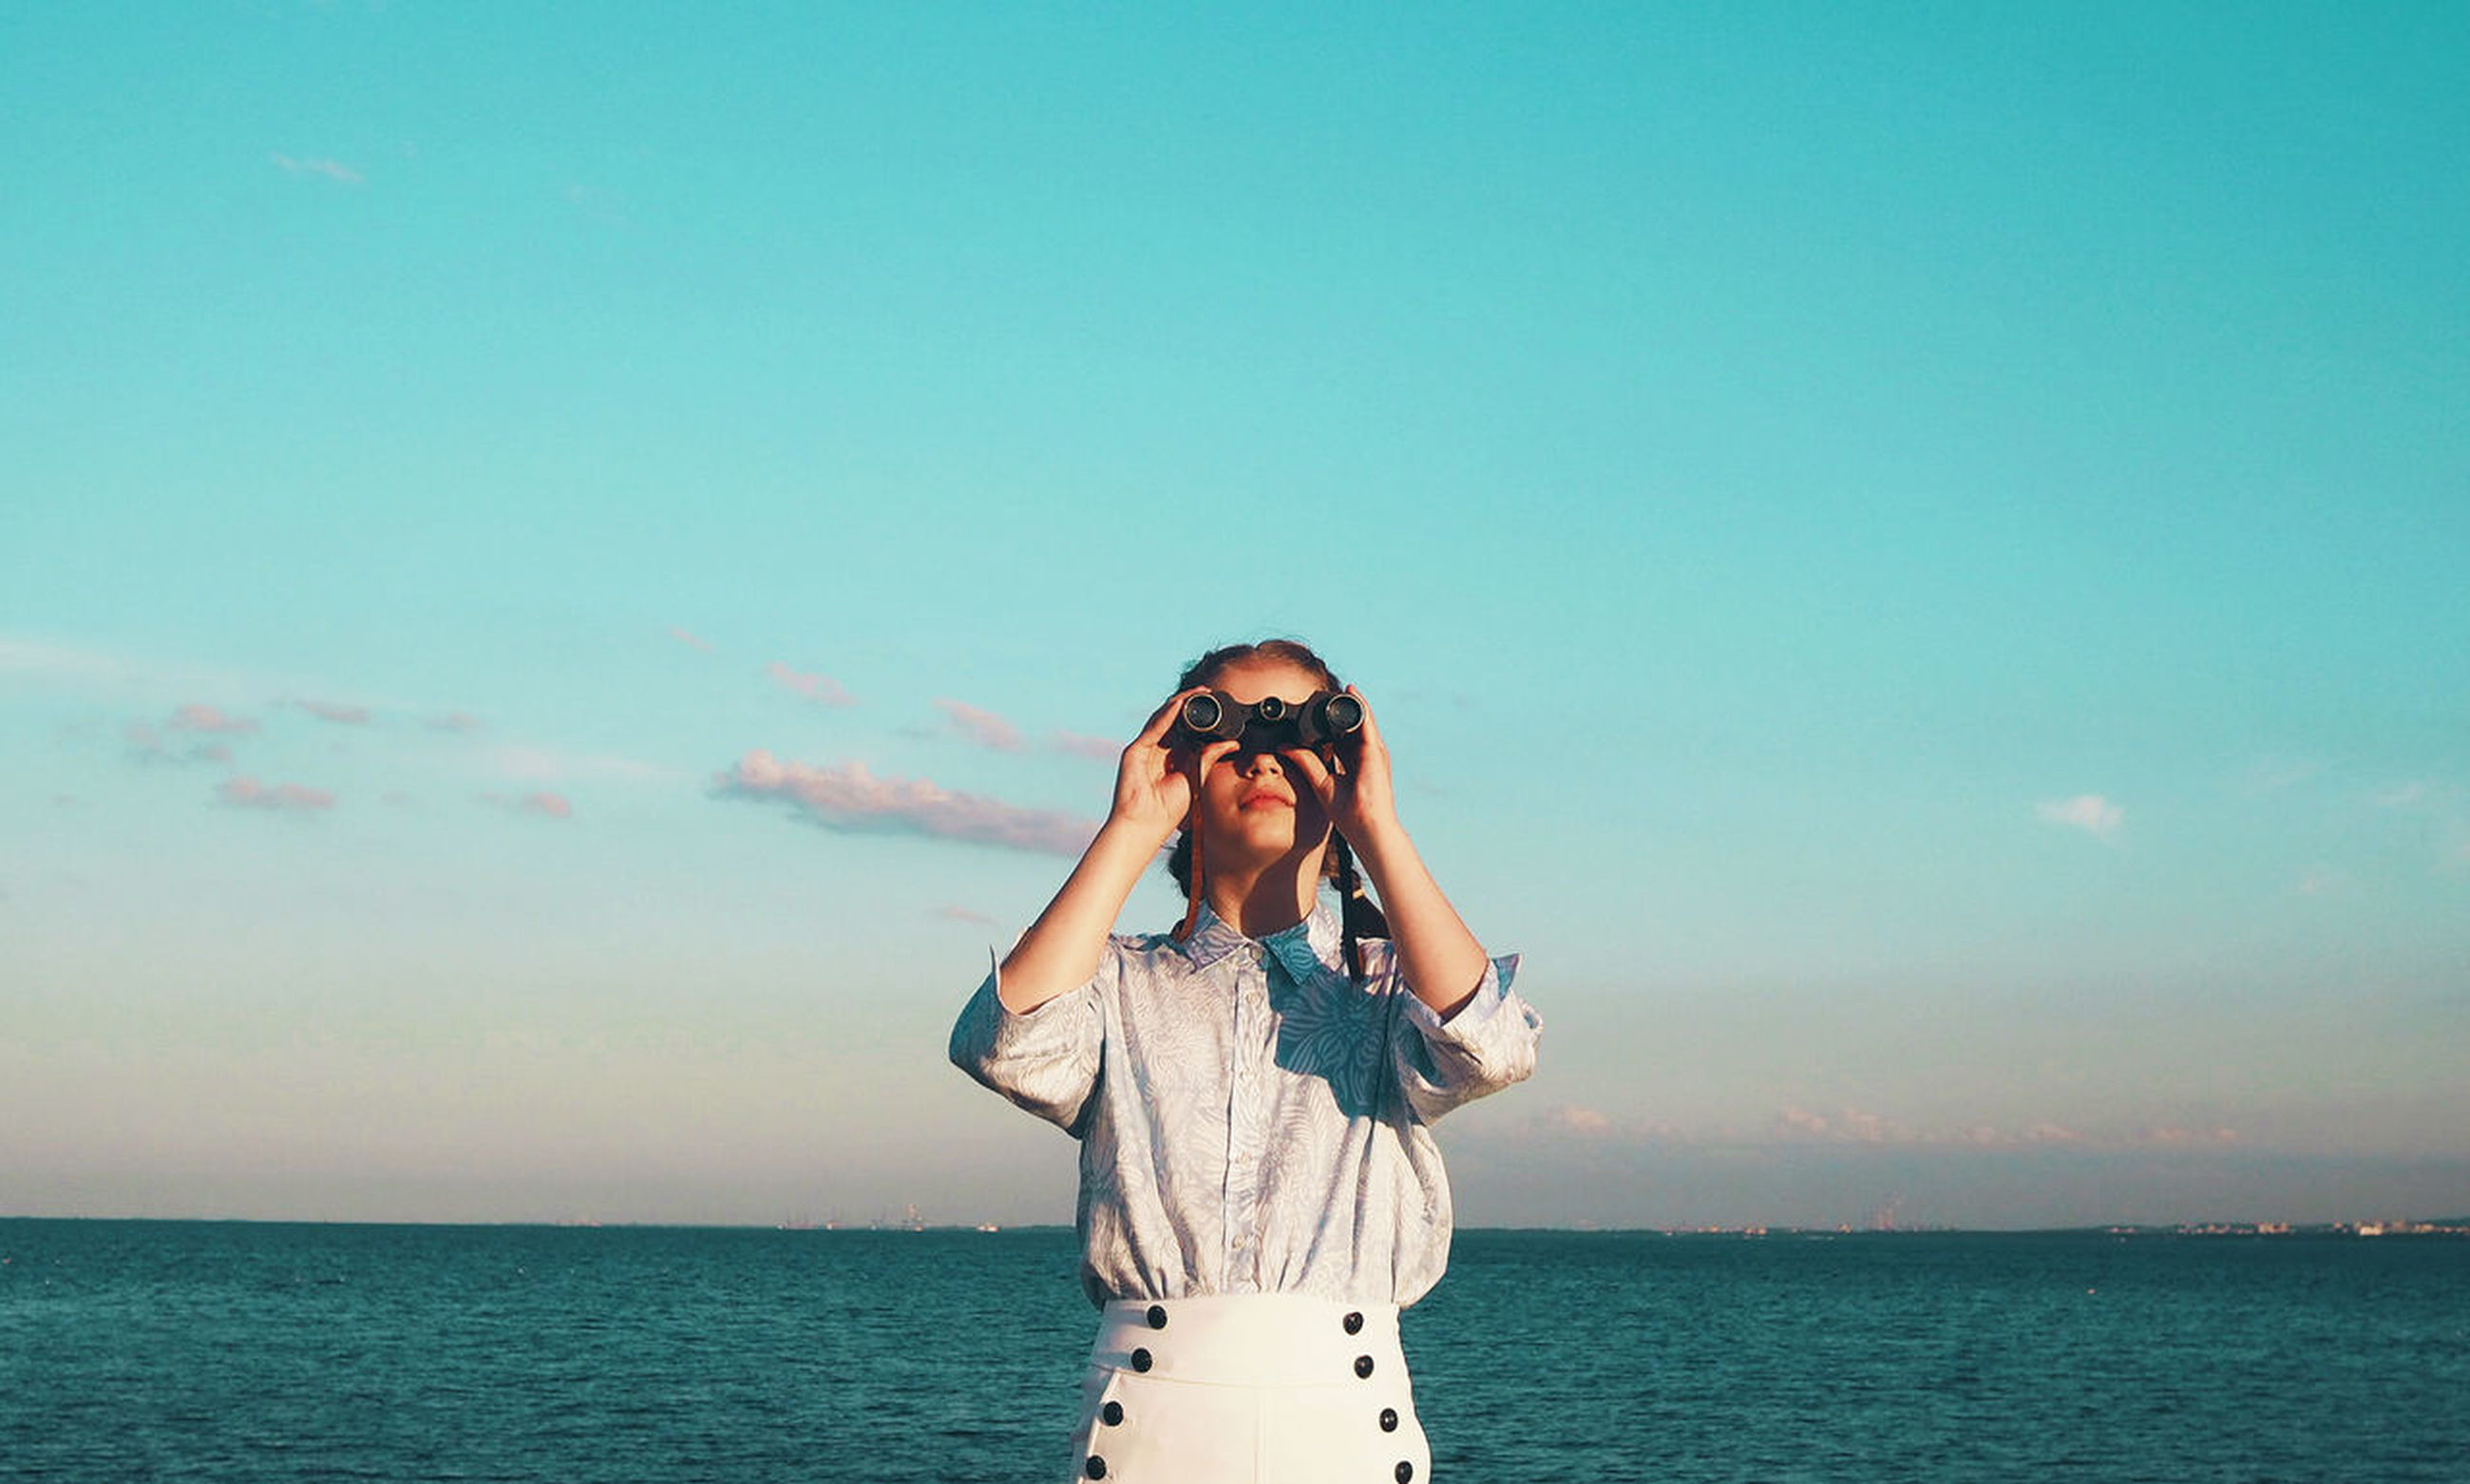 real people, front view, standing, sea, waist up, sky, one person, young adult, horizon over water, leisure activity, lifestyles, portrait, beauty in nature, looking at camera, young women, scenics, nature, outdoors, day, water, adult, people